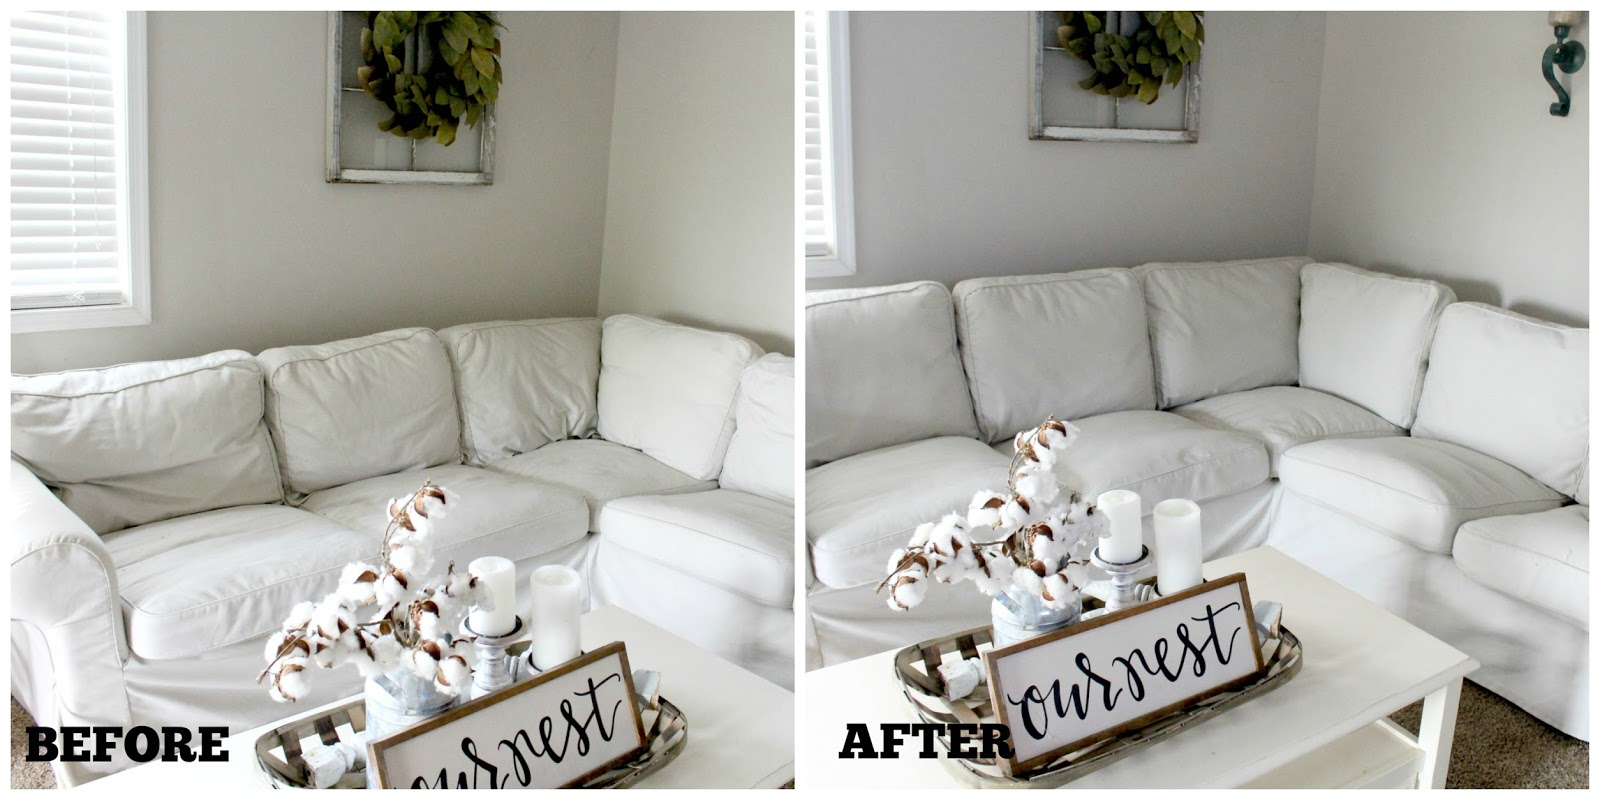 Sofa Batting | Restuffing Couch Cushions | Refill Sofa Cushions